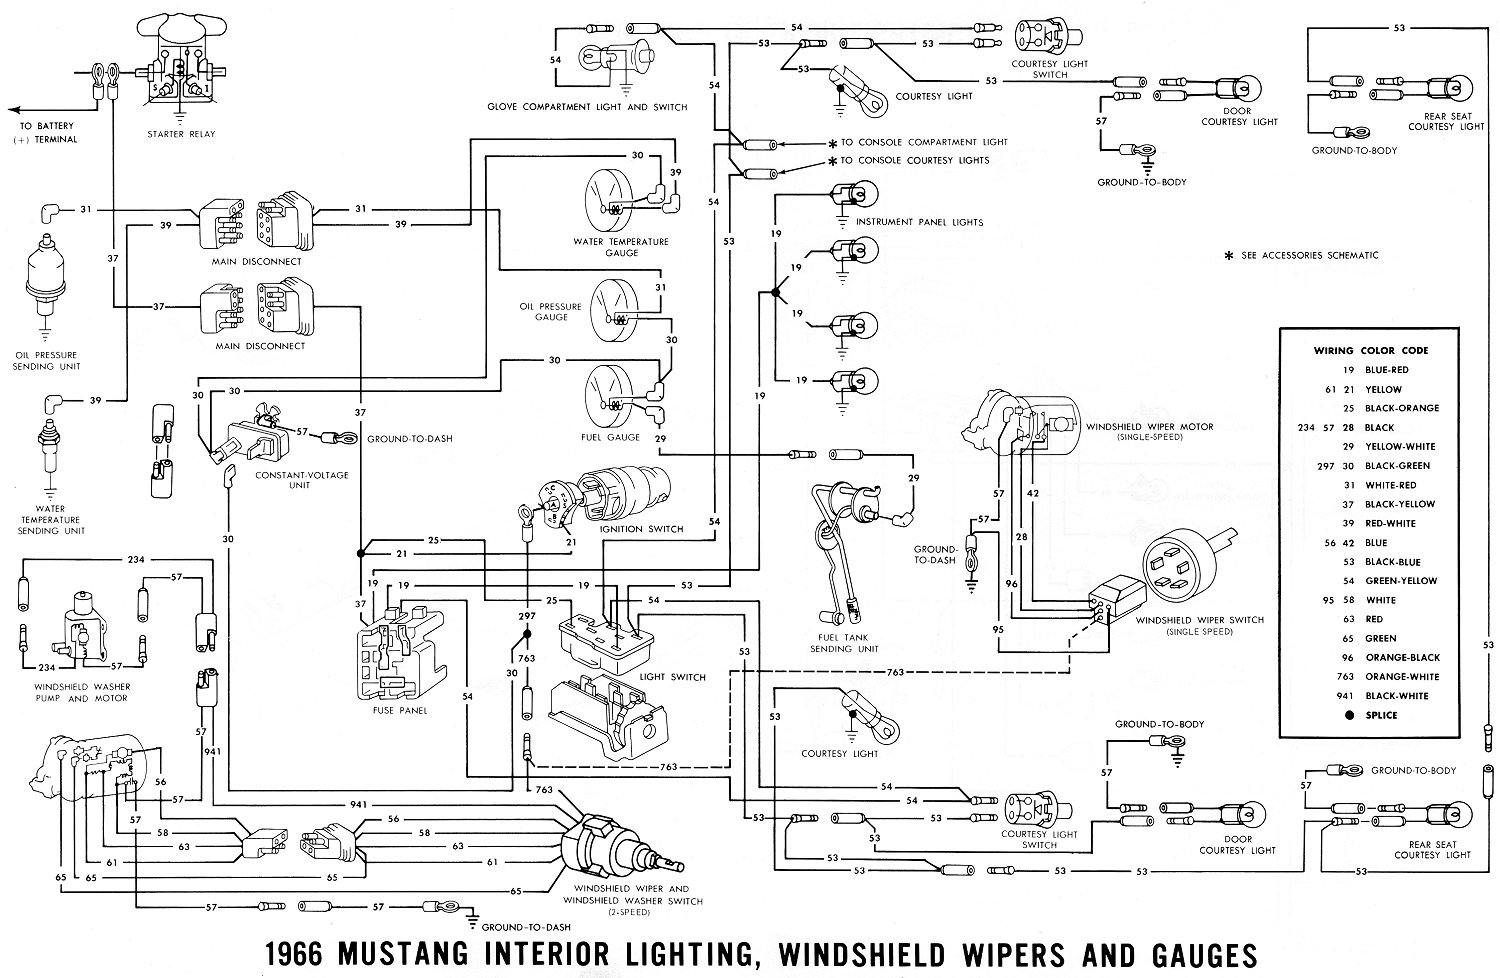 1966 mustang wiring diagrams average joe restoration rh averagejoerestoration com 1966 Ford Mustang Wiring Diagram 1969 Mustang Alternator Wiring Diagram